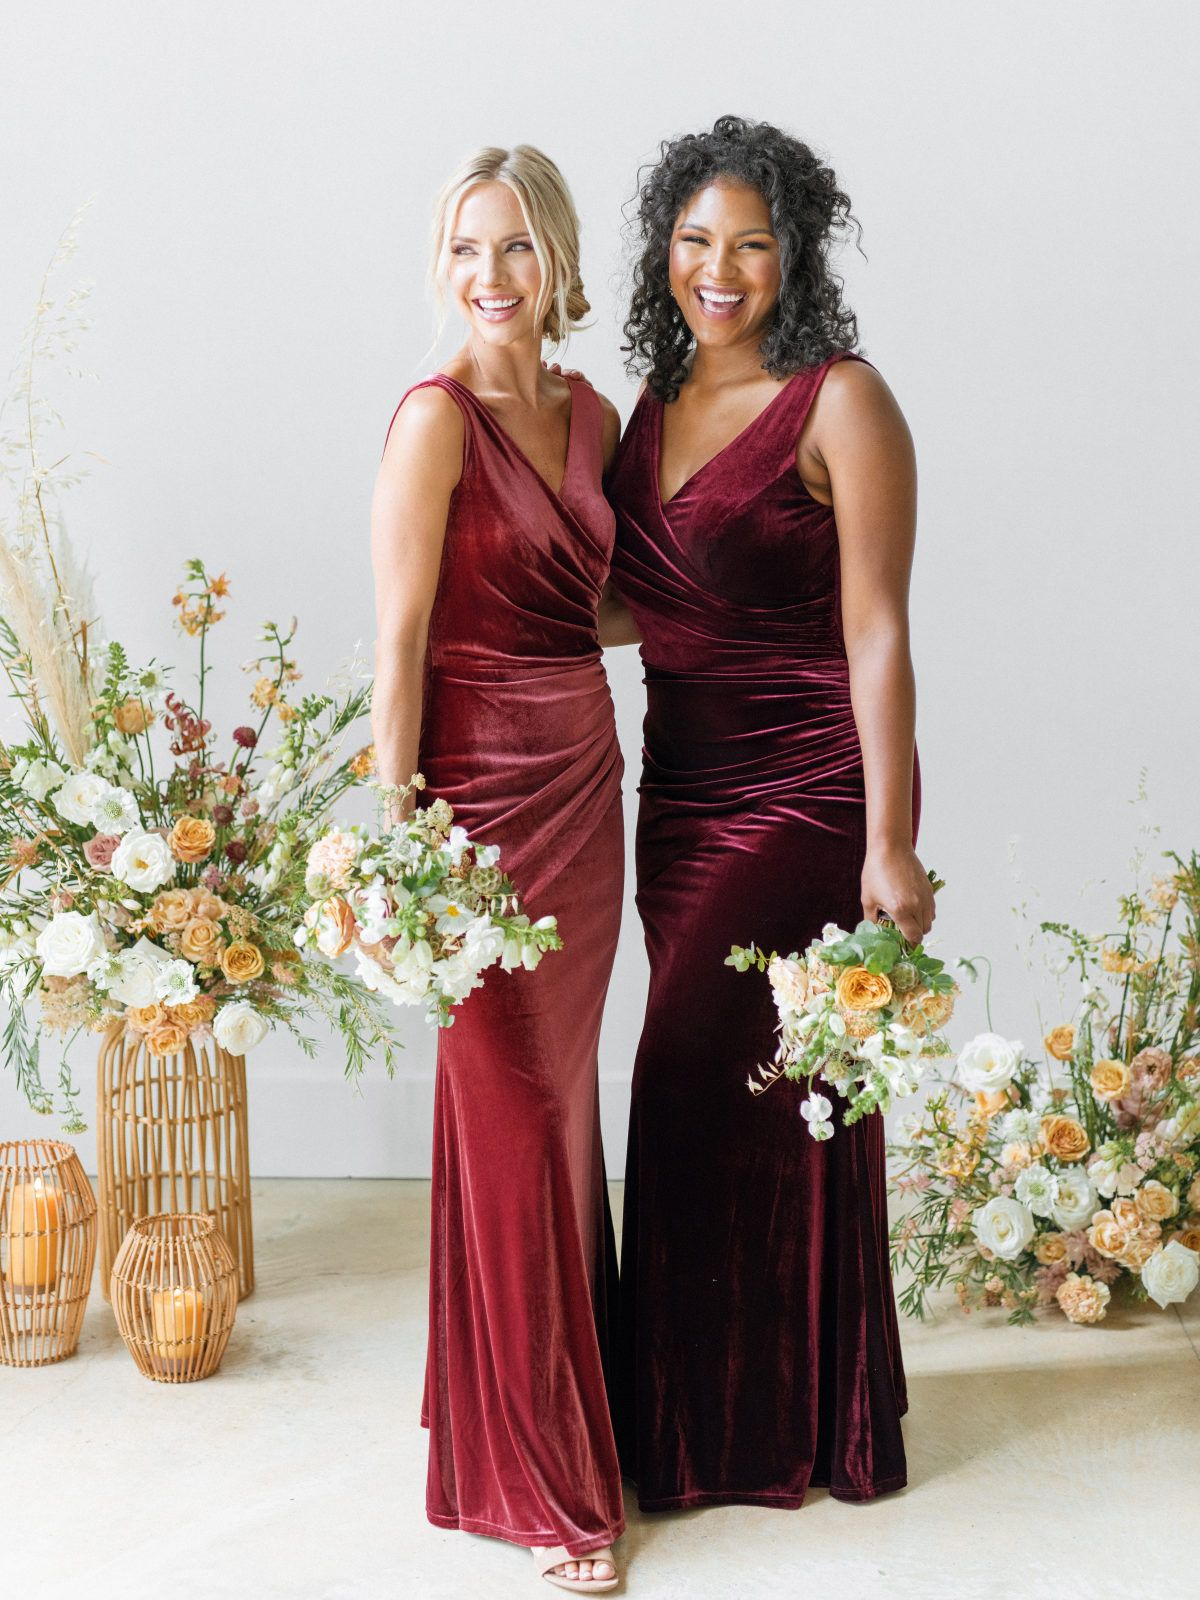 Revelry Just Launched An All Velvet Bridesmaid Dress Collection And We Re So Here For It Velvet Bridesmaid Dresses Bridesmaid Dress Collection Fall Bridesmaid Dresses [ 1600 x 1200 Pixel ]